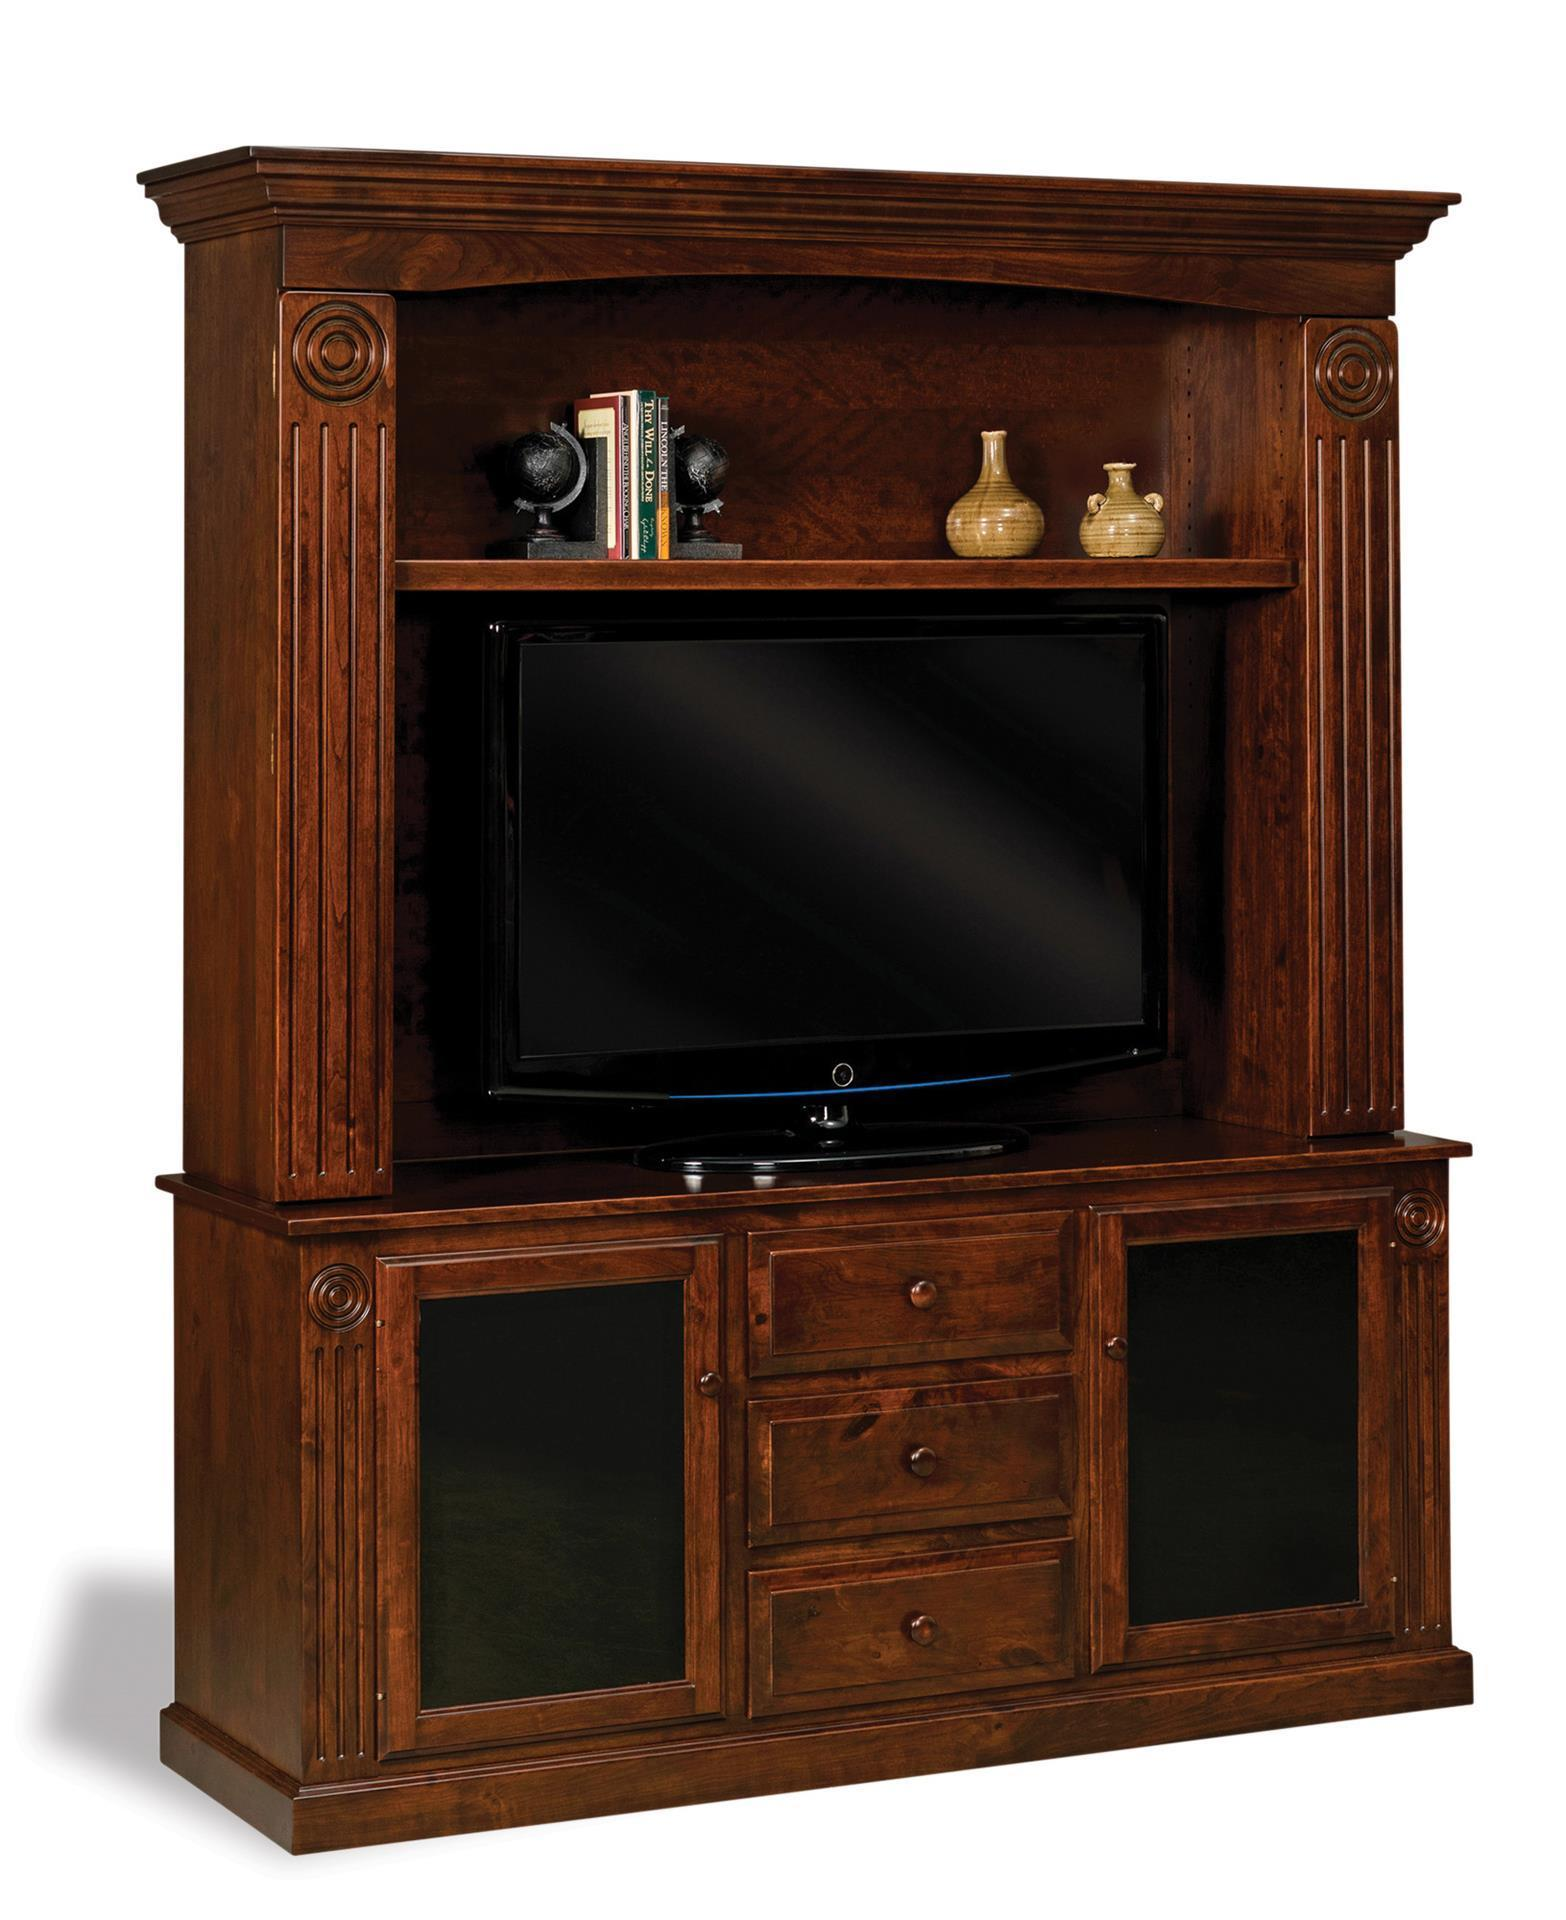 Victorian Tv Stand: Victorian Glass Door Entertainment Center From